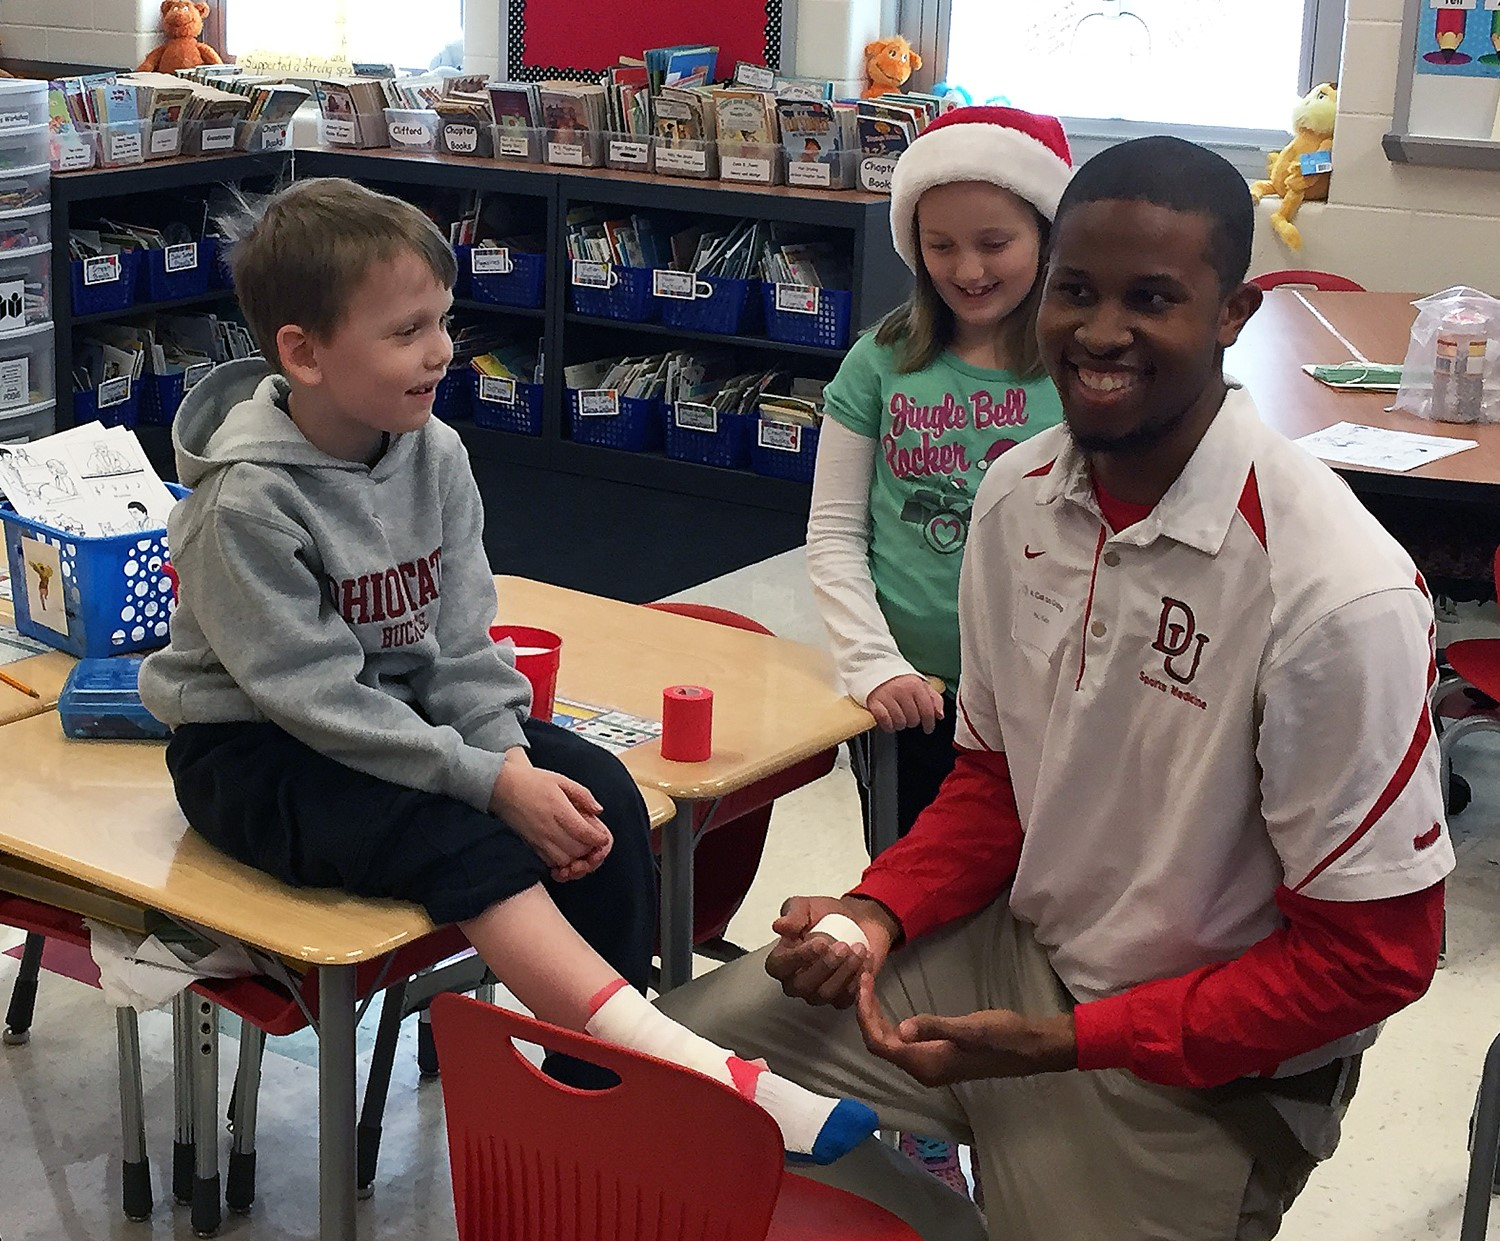 Celebrity Reader Week featured professionals from a bunch of cool careers, like an athletic trainer